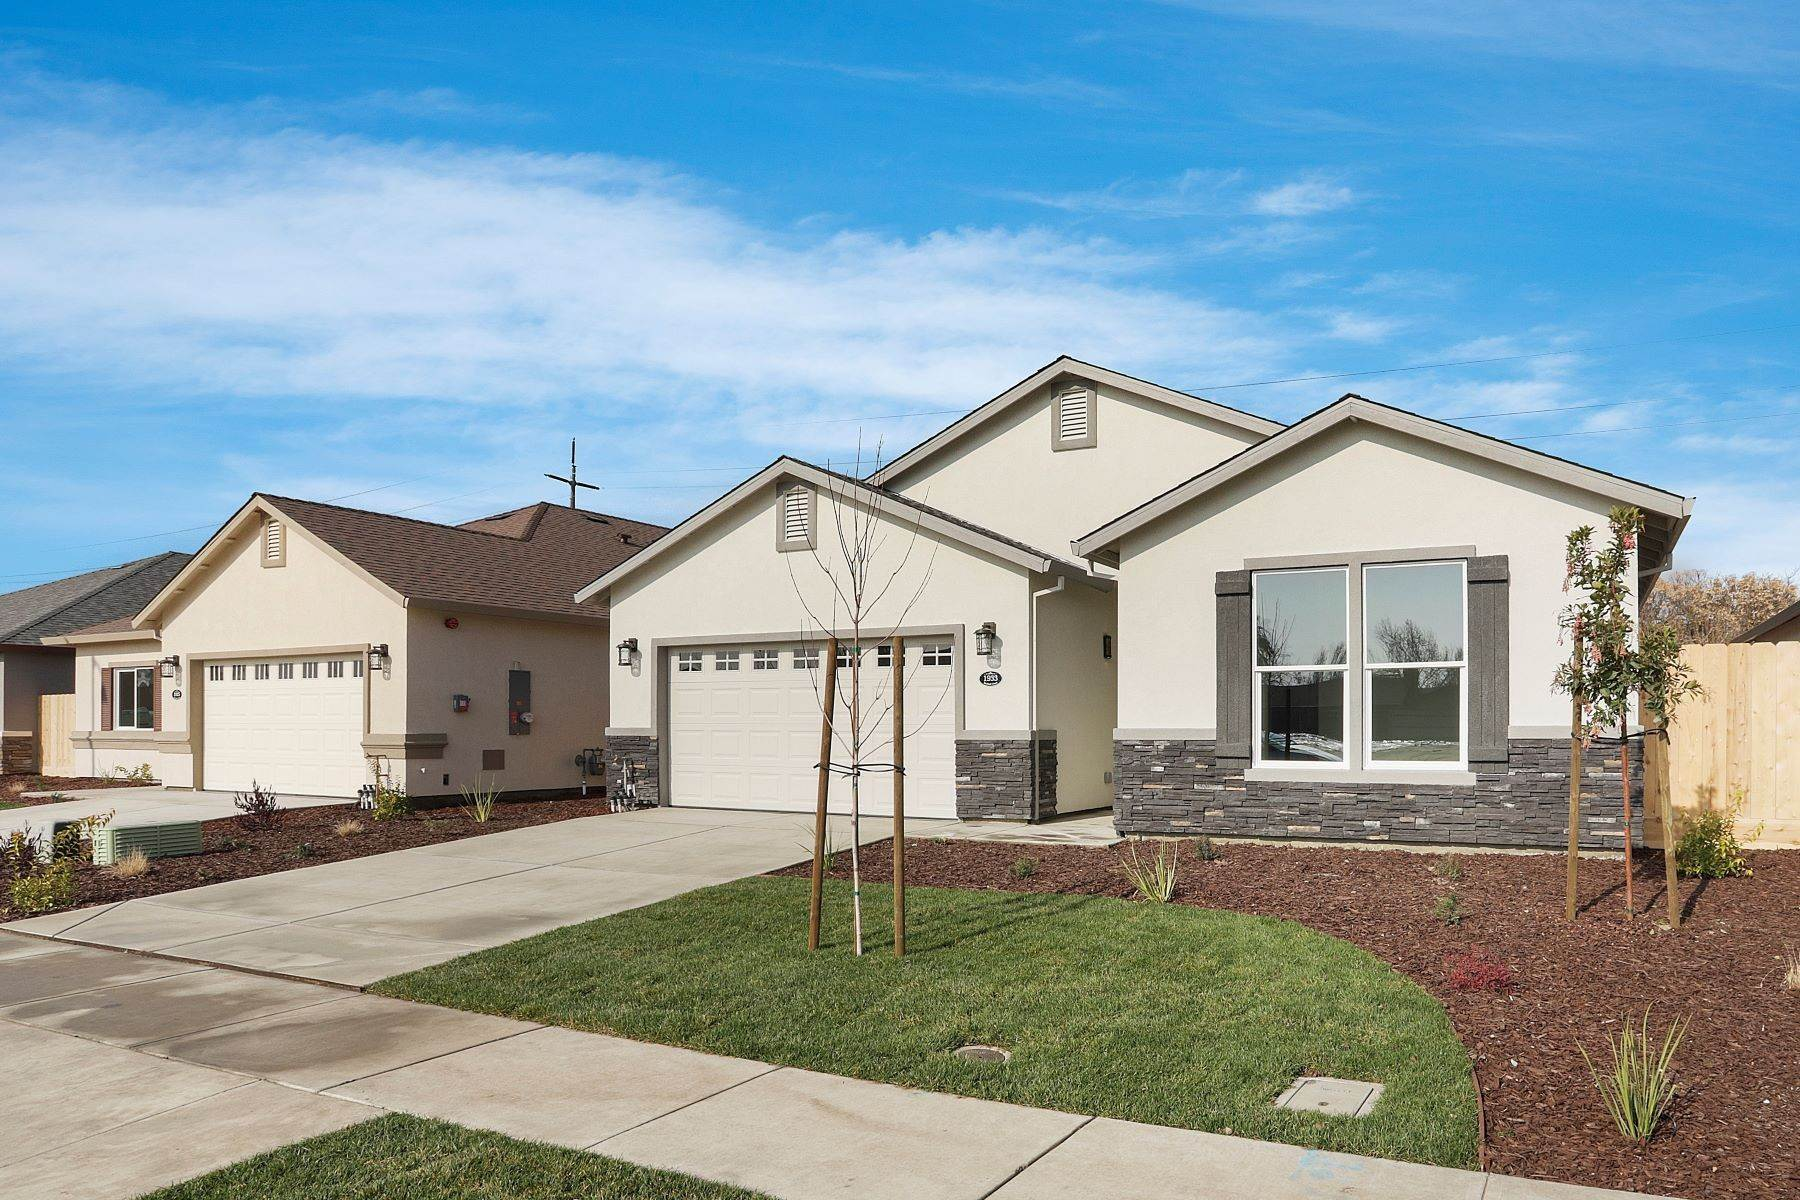 2. Single Family Homes for Sale at 1958 Simbad Court, Stockton 1958 Simbad Court Stockton, California 95206 United States